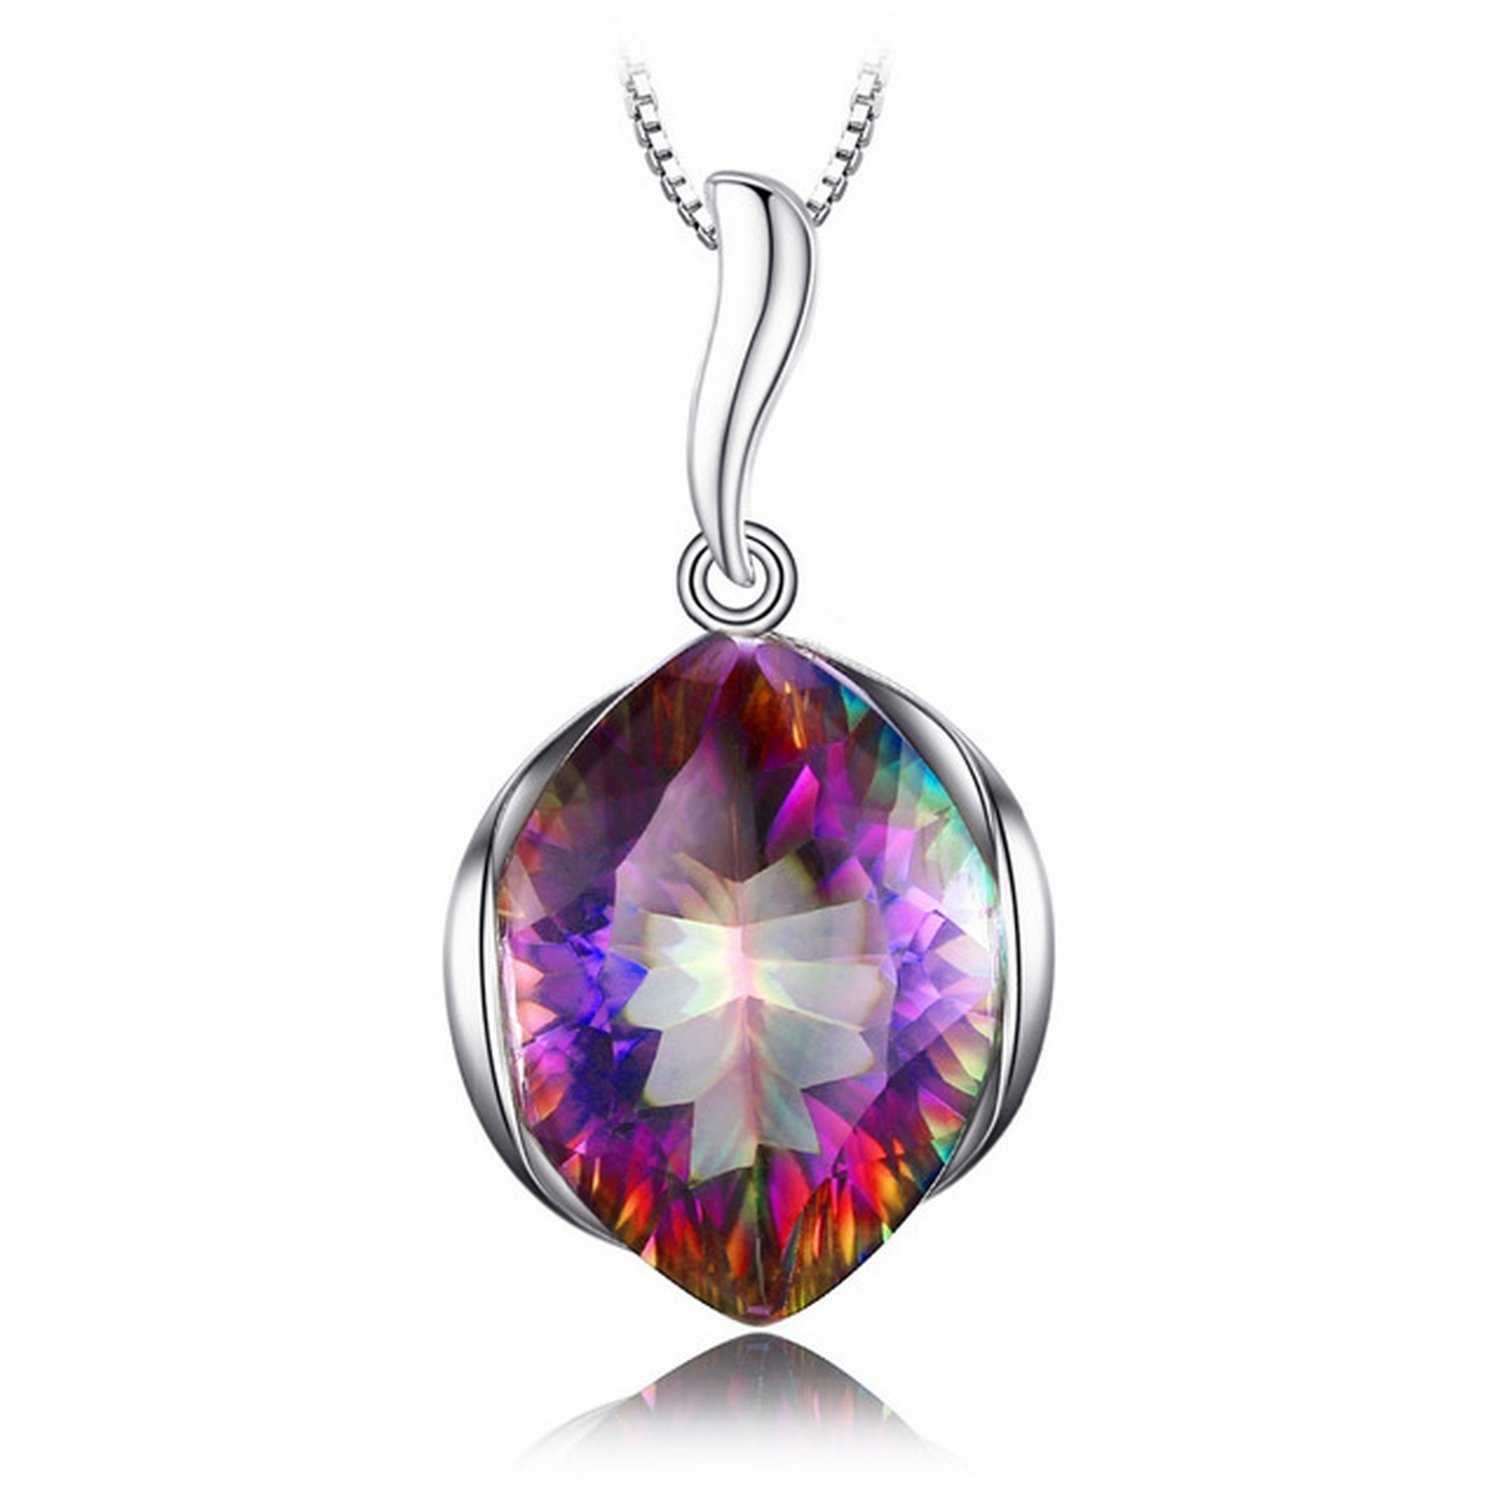 MMC Silver Pendants 11ct Genuine Topaz Charm Necklaces for Womens